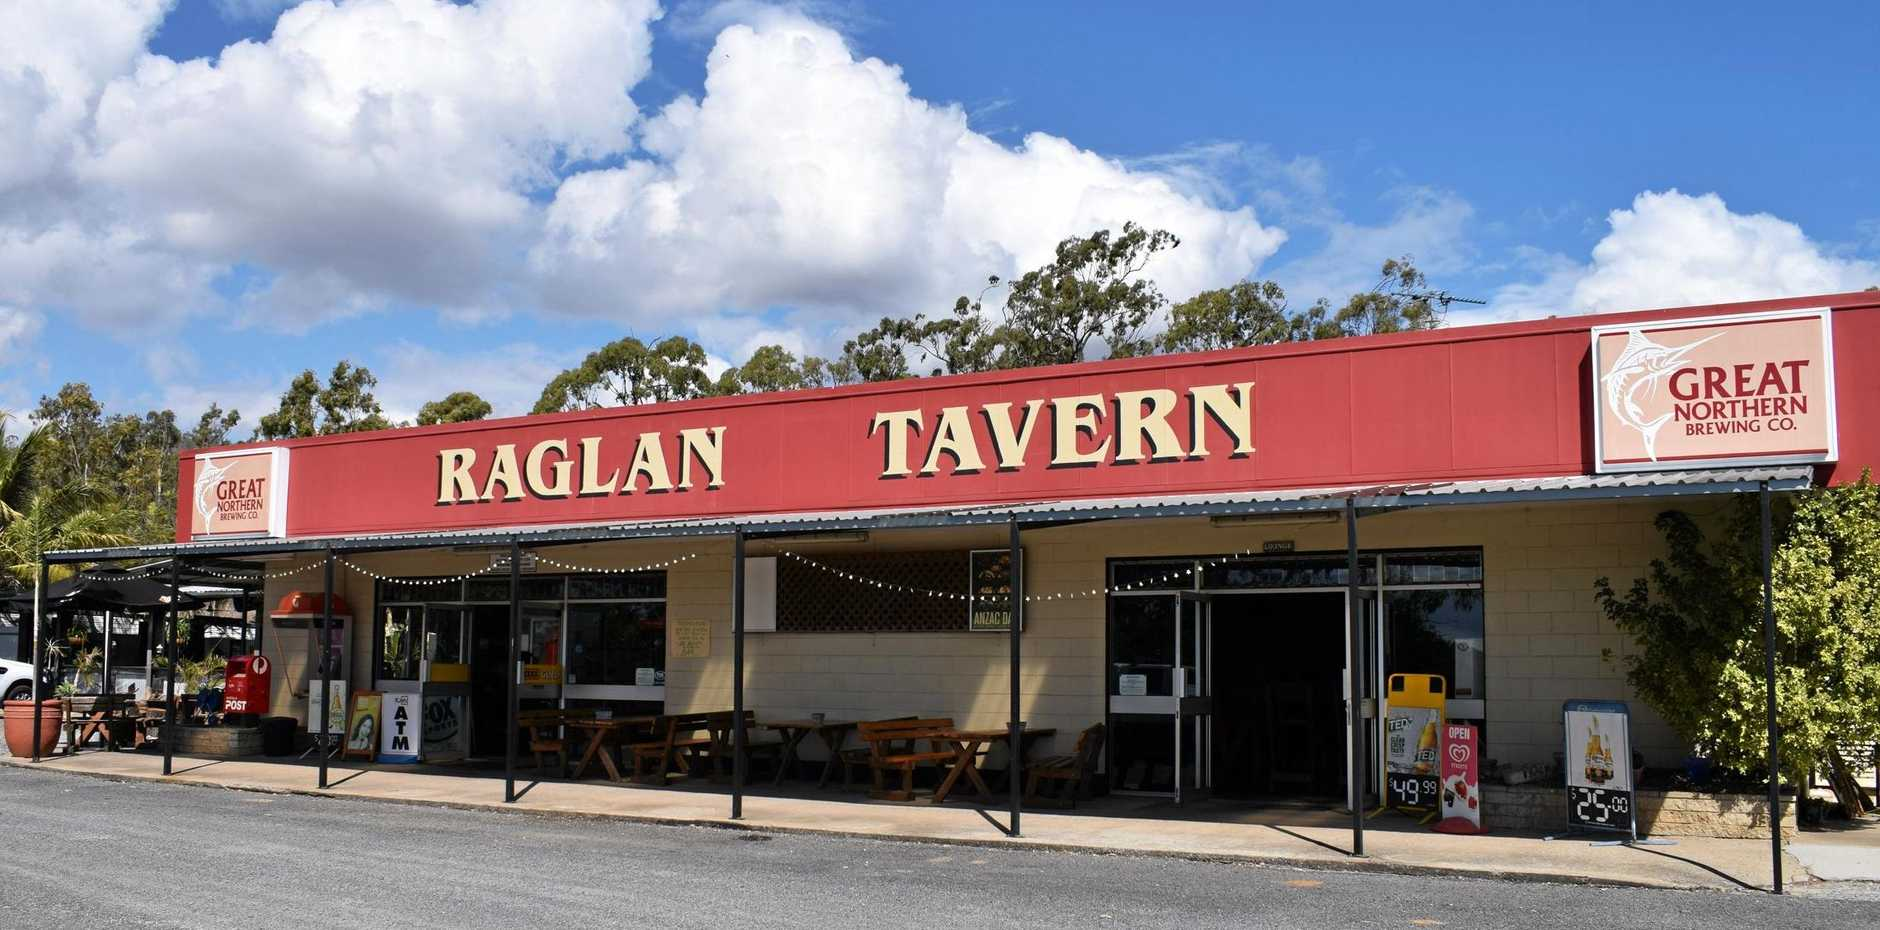 Business at the Raglan Tavern has been affected by ongoing roadworks for the past two years.